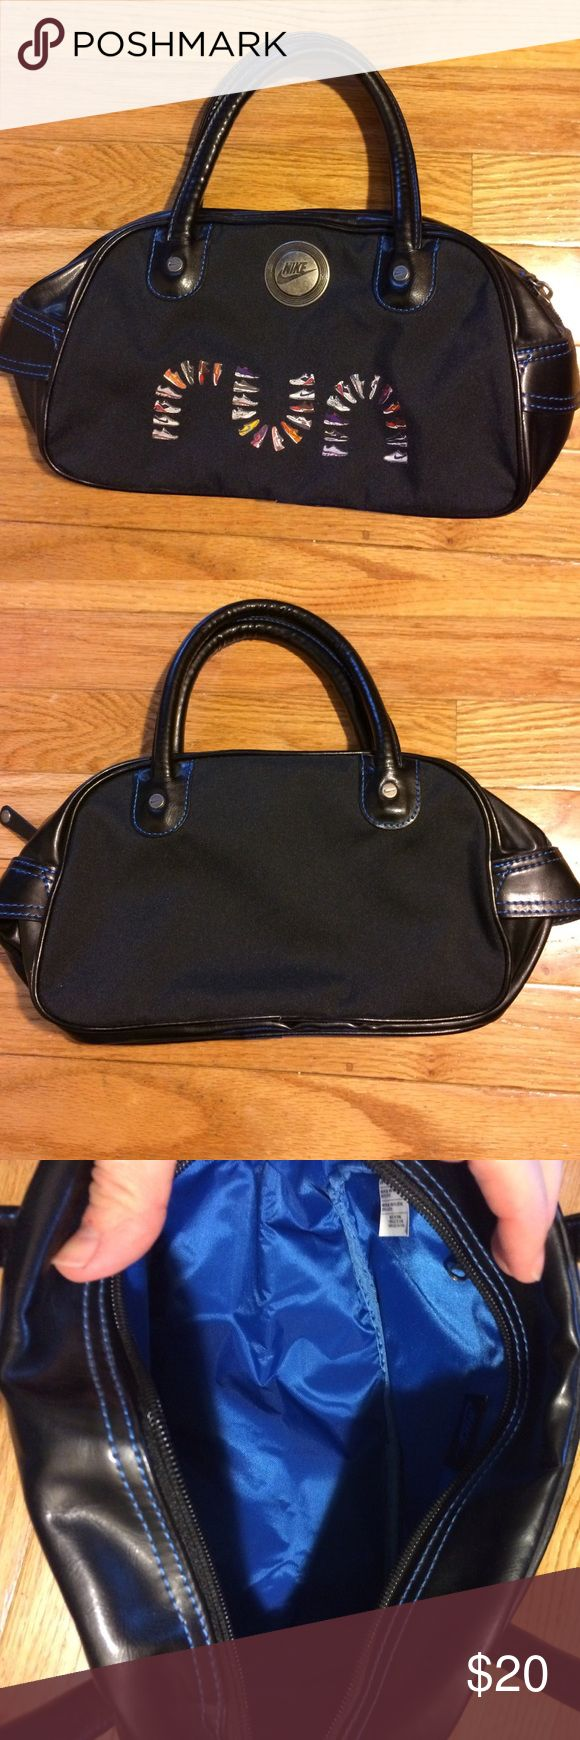 NIKE purse NWOT cute black purse for those runners out there! About 9 inches across the side that says run 6 inches top to bottom and 5 inches across bottom. It also has a zippered pocket inside 💕Smoke free home. Bundle to save more! Nike Bags Mini Bags